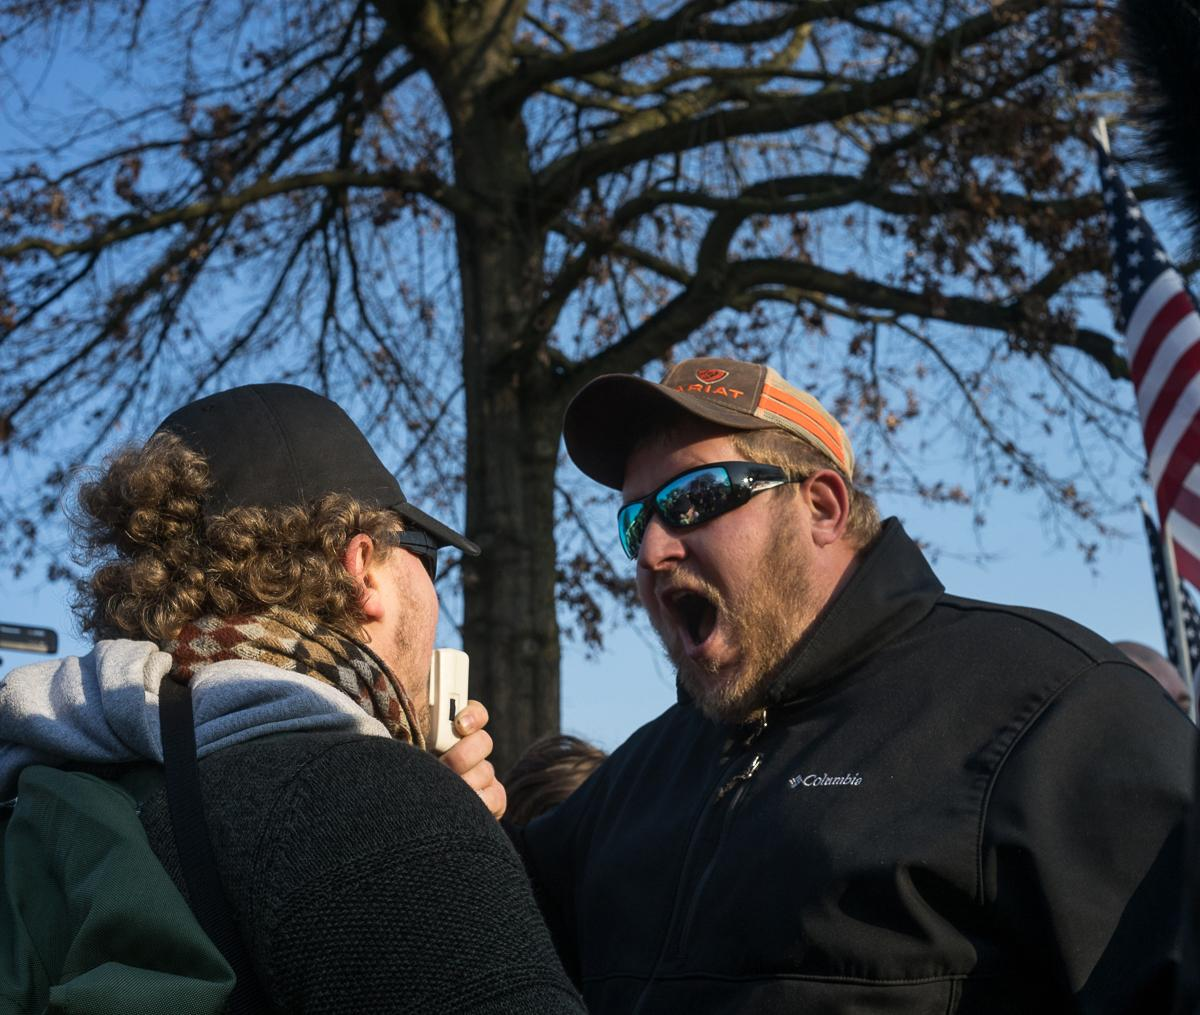 An attendee of the Patriot Prayer rally (right) engages in a heated exchange with a counter-protester (left). A demonstration by the alt-right, conservative group Patriot Prayer began at 1 p.m. in Portland, Ore., on Saturday, December 9, to protest the homicide acquittal of Jose Ines Garcia Zarate, the undocumented immigrant who accidentally shot and killed Kate Steinle in San Francisco. The demonstration attracted a large crowd of counter-protesters and members of Antifa, and heated exchanges and several scuffles occurred between the two groups throughout the afternoon until the event's conclusion at 4 p.m., with at least one member of Patriot Prayer being detained by police and several demonstrators being injured. The rally began in Portland's Terry Schrunk Plaza and developed into a march along the Tom McCall Waterfront Park before ending at Terry Schrunk Plaza again. Photo by Kit MacAvoy, Oregon News Lab